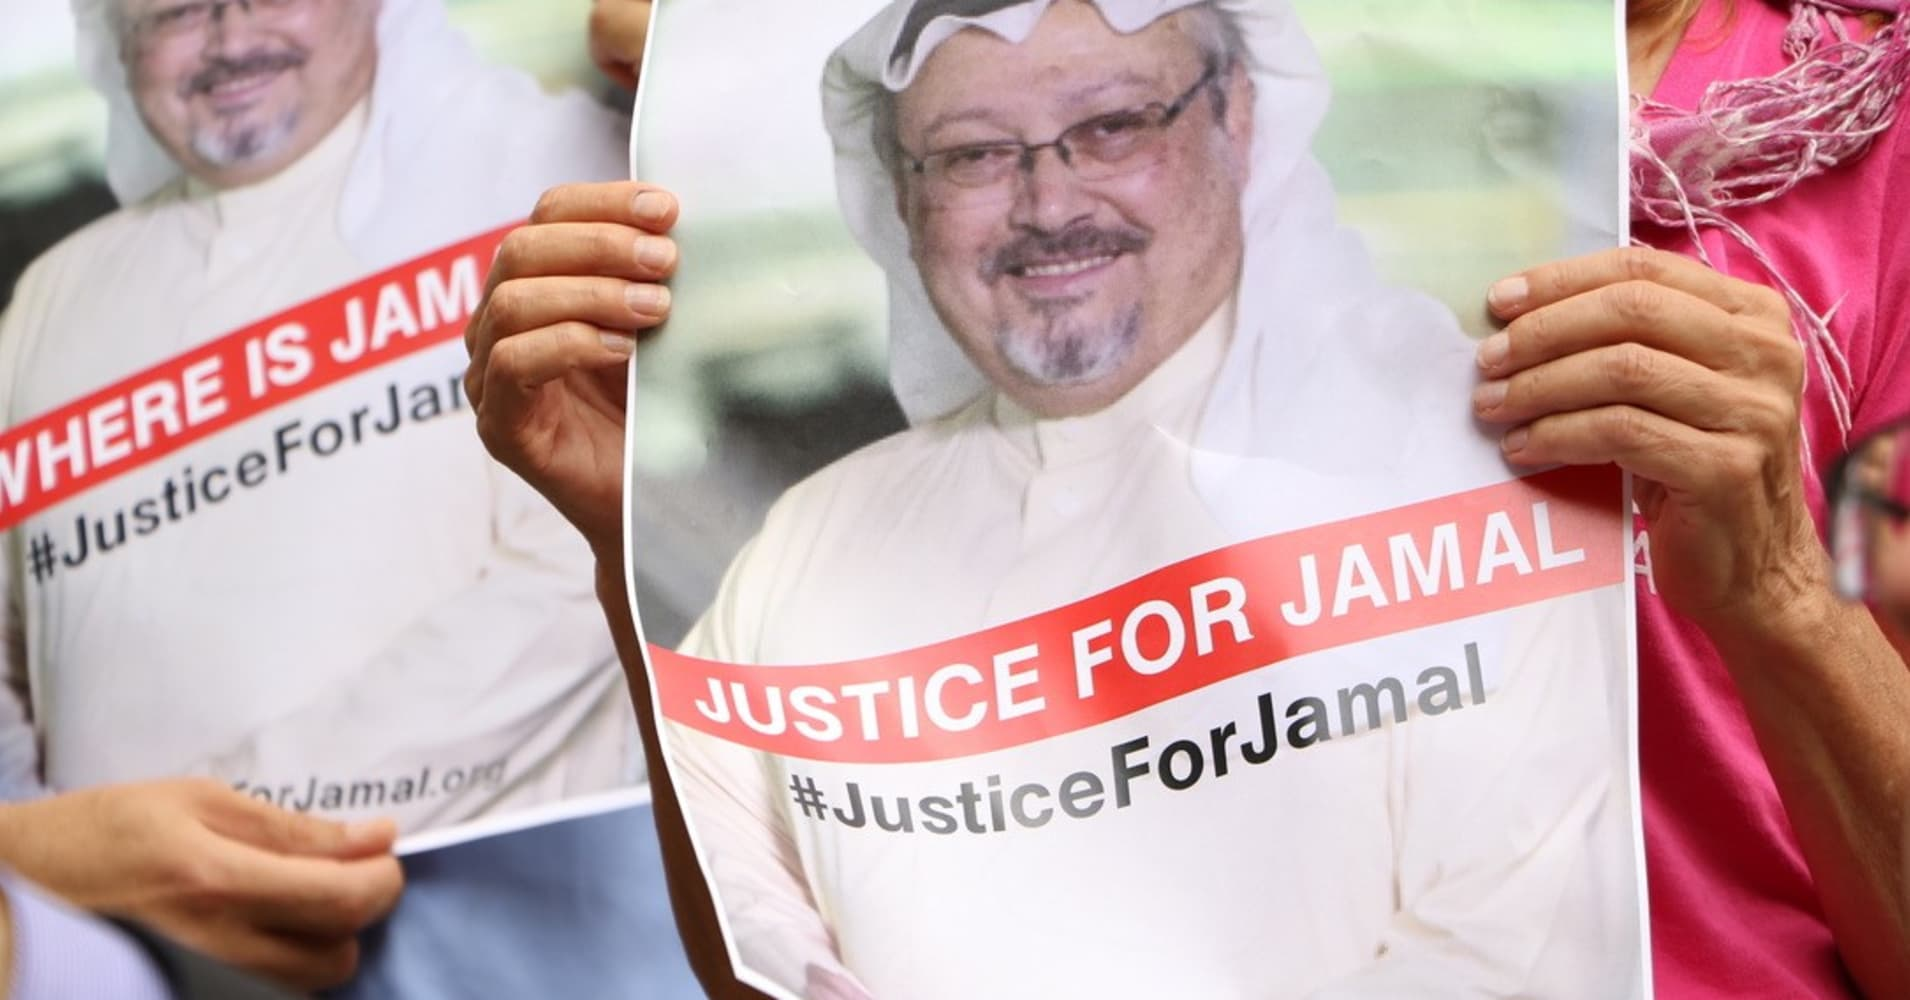 The case of the missing Saudi journalist is creating major worries around the oil market